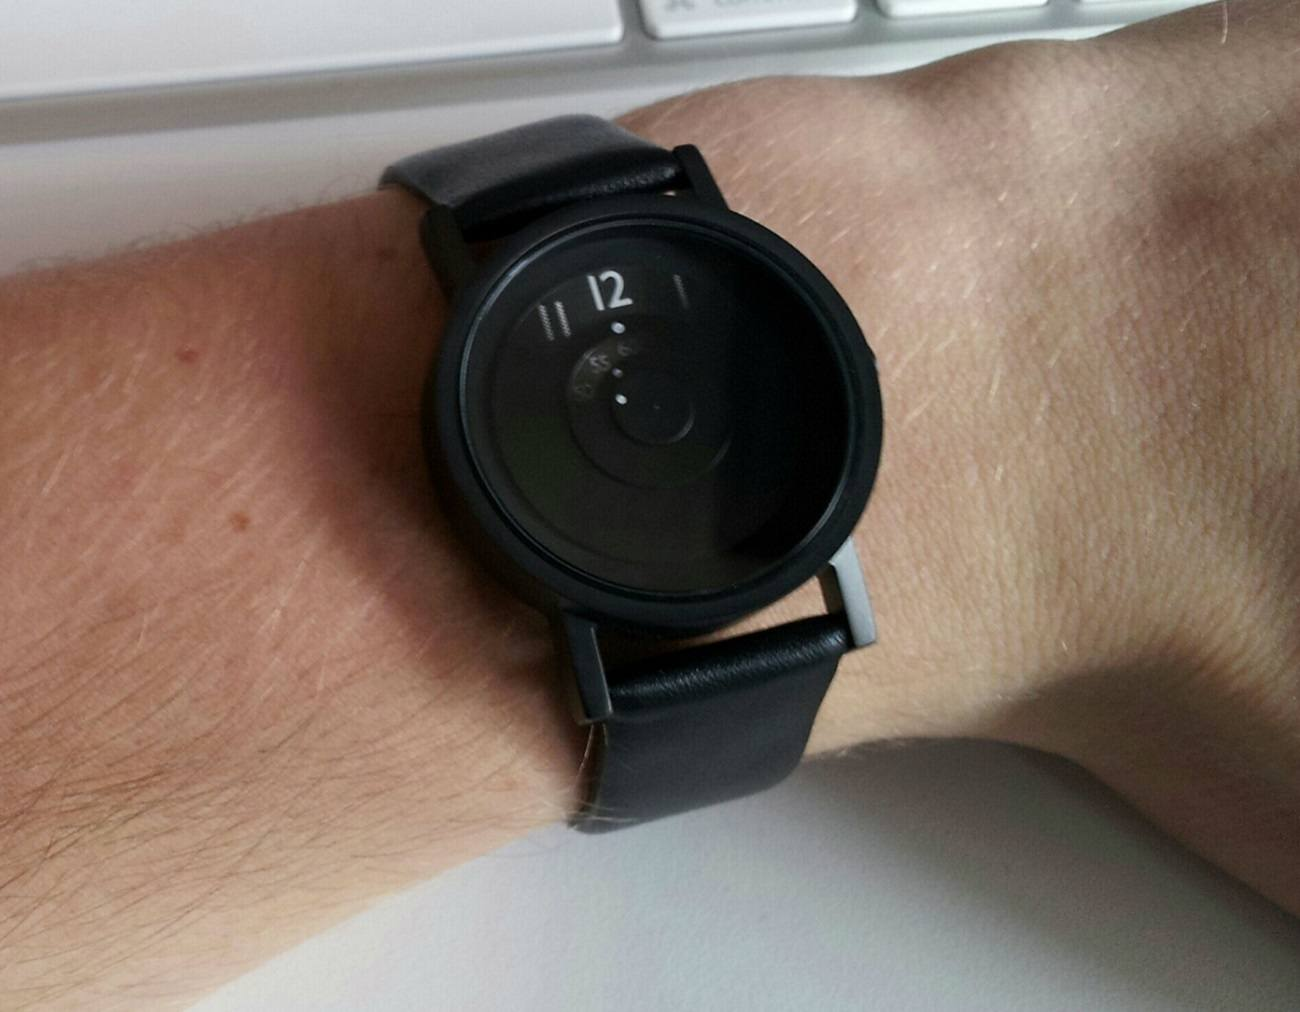 Reveal Watch – Highlighting Time Fading Away in the Past